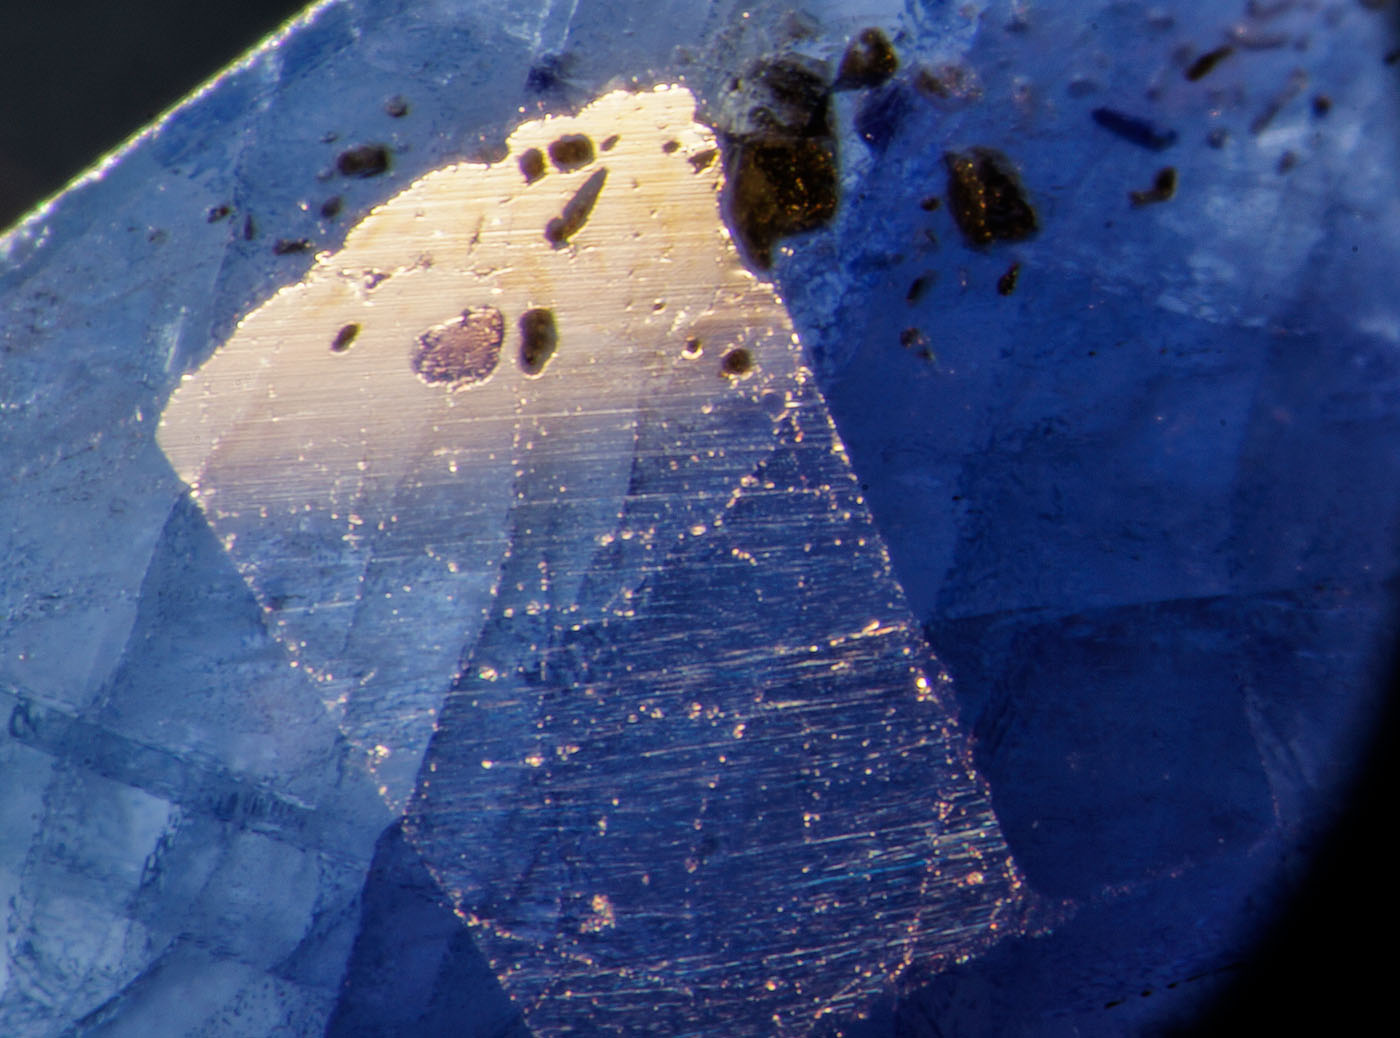 An inclusion in cobalt-doped glass filled sapphire reveals the lower luster of the glass filler. Photo: Richard W. Hughes, Lotus Gemology.